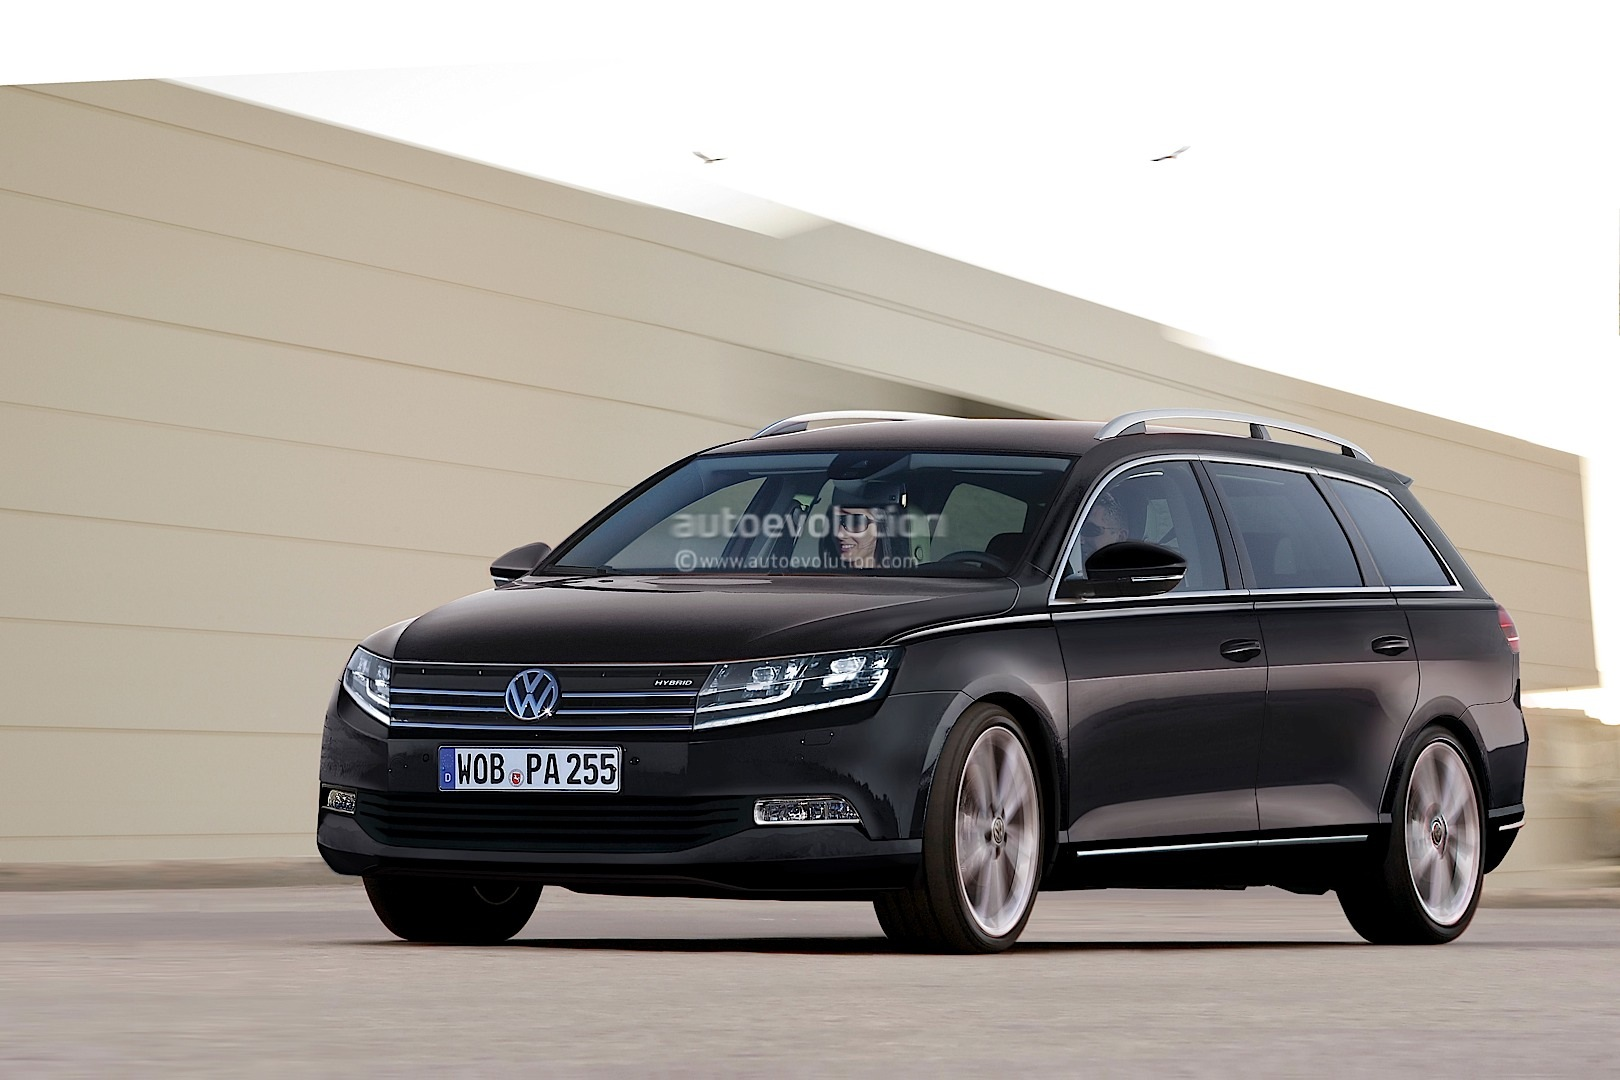 Photo Gallery of the 2015 Volkswagen Passat Concept | Car Pictures